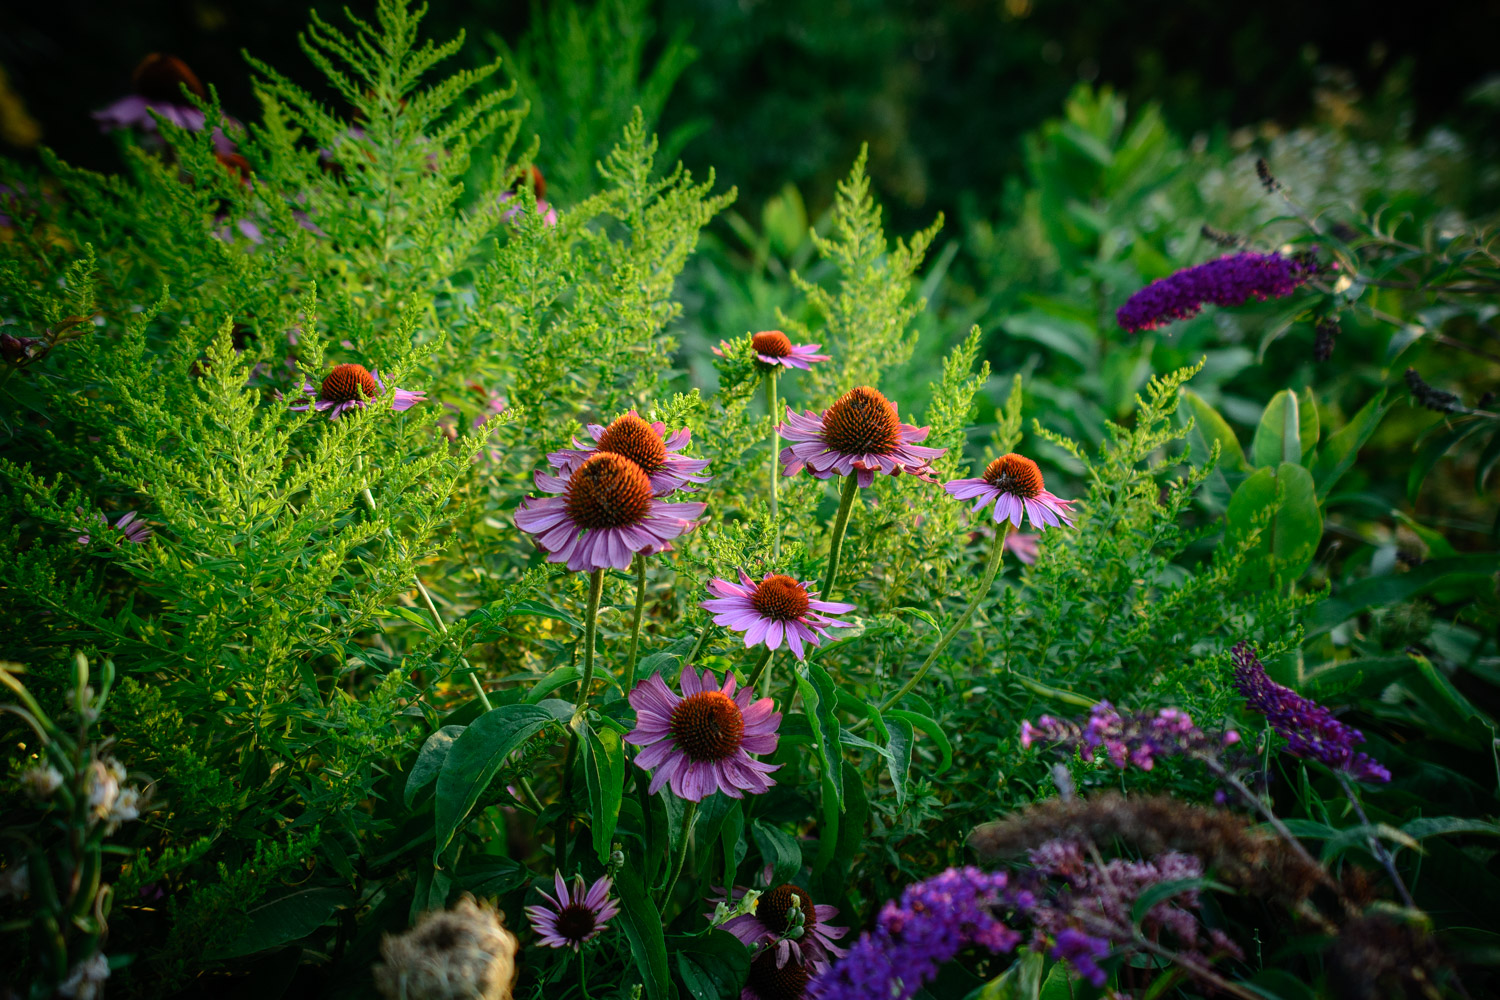 Image: When I first got my camera, I would take pictures of flowers. I was never happy with the phot...